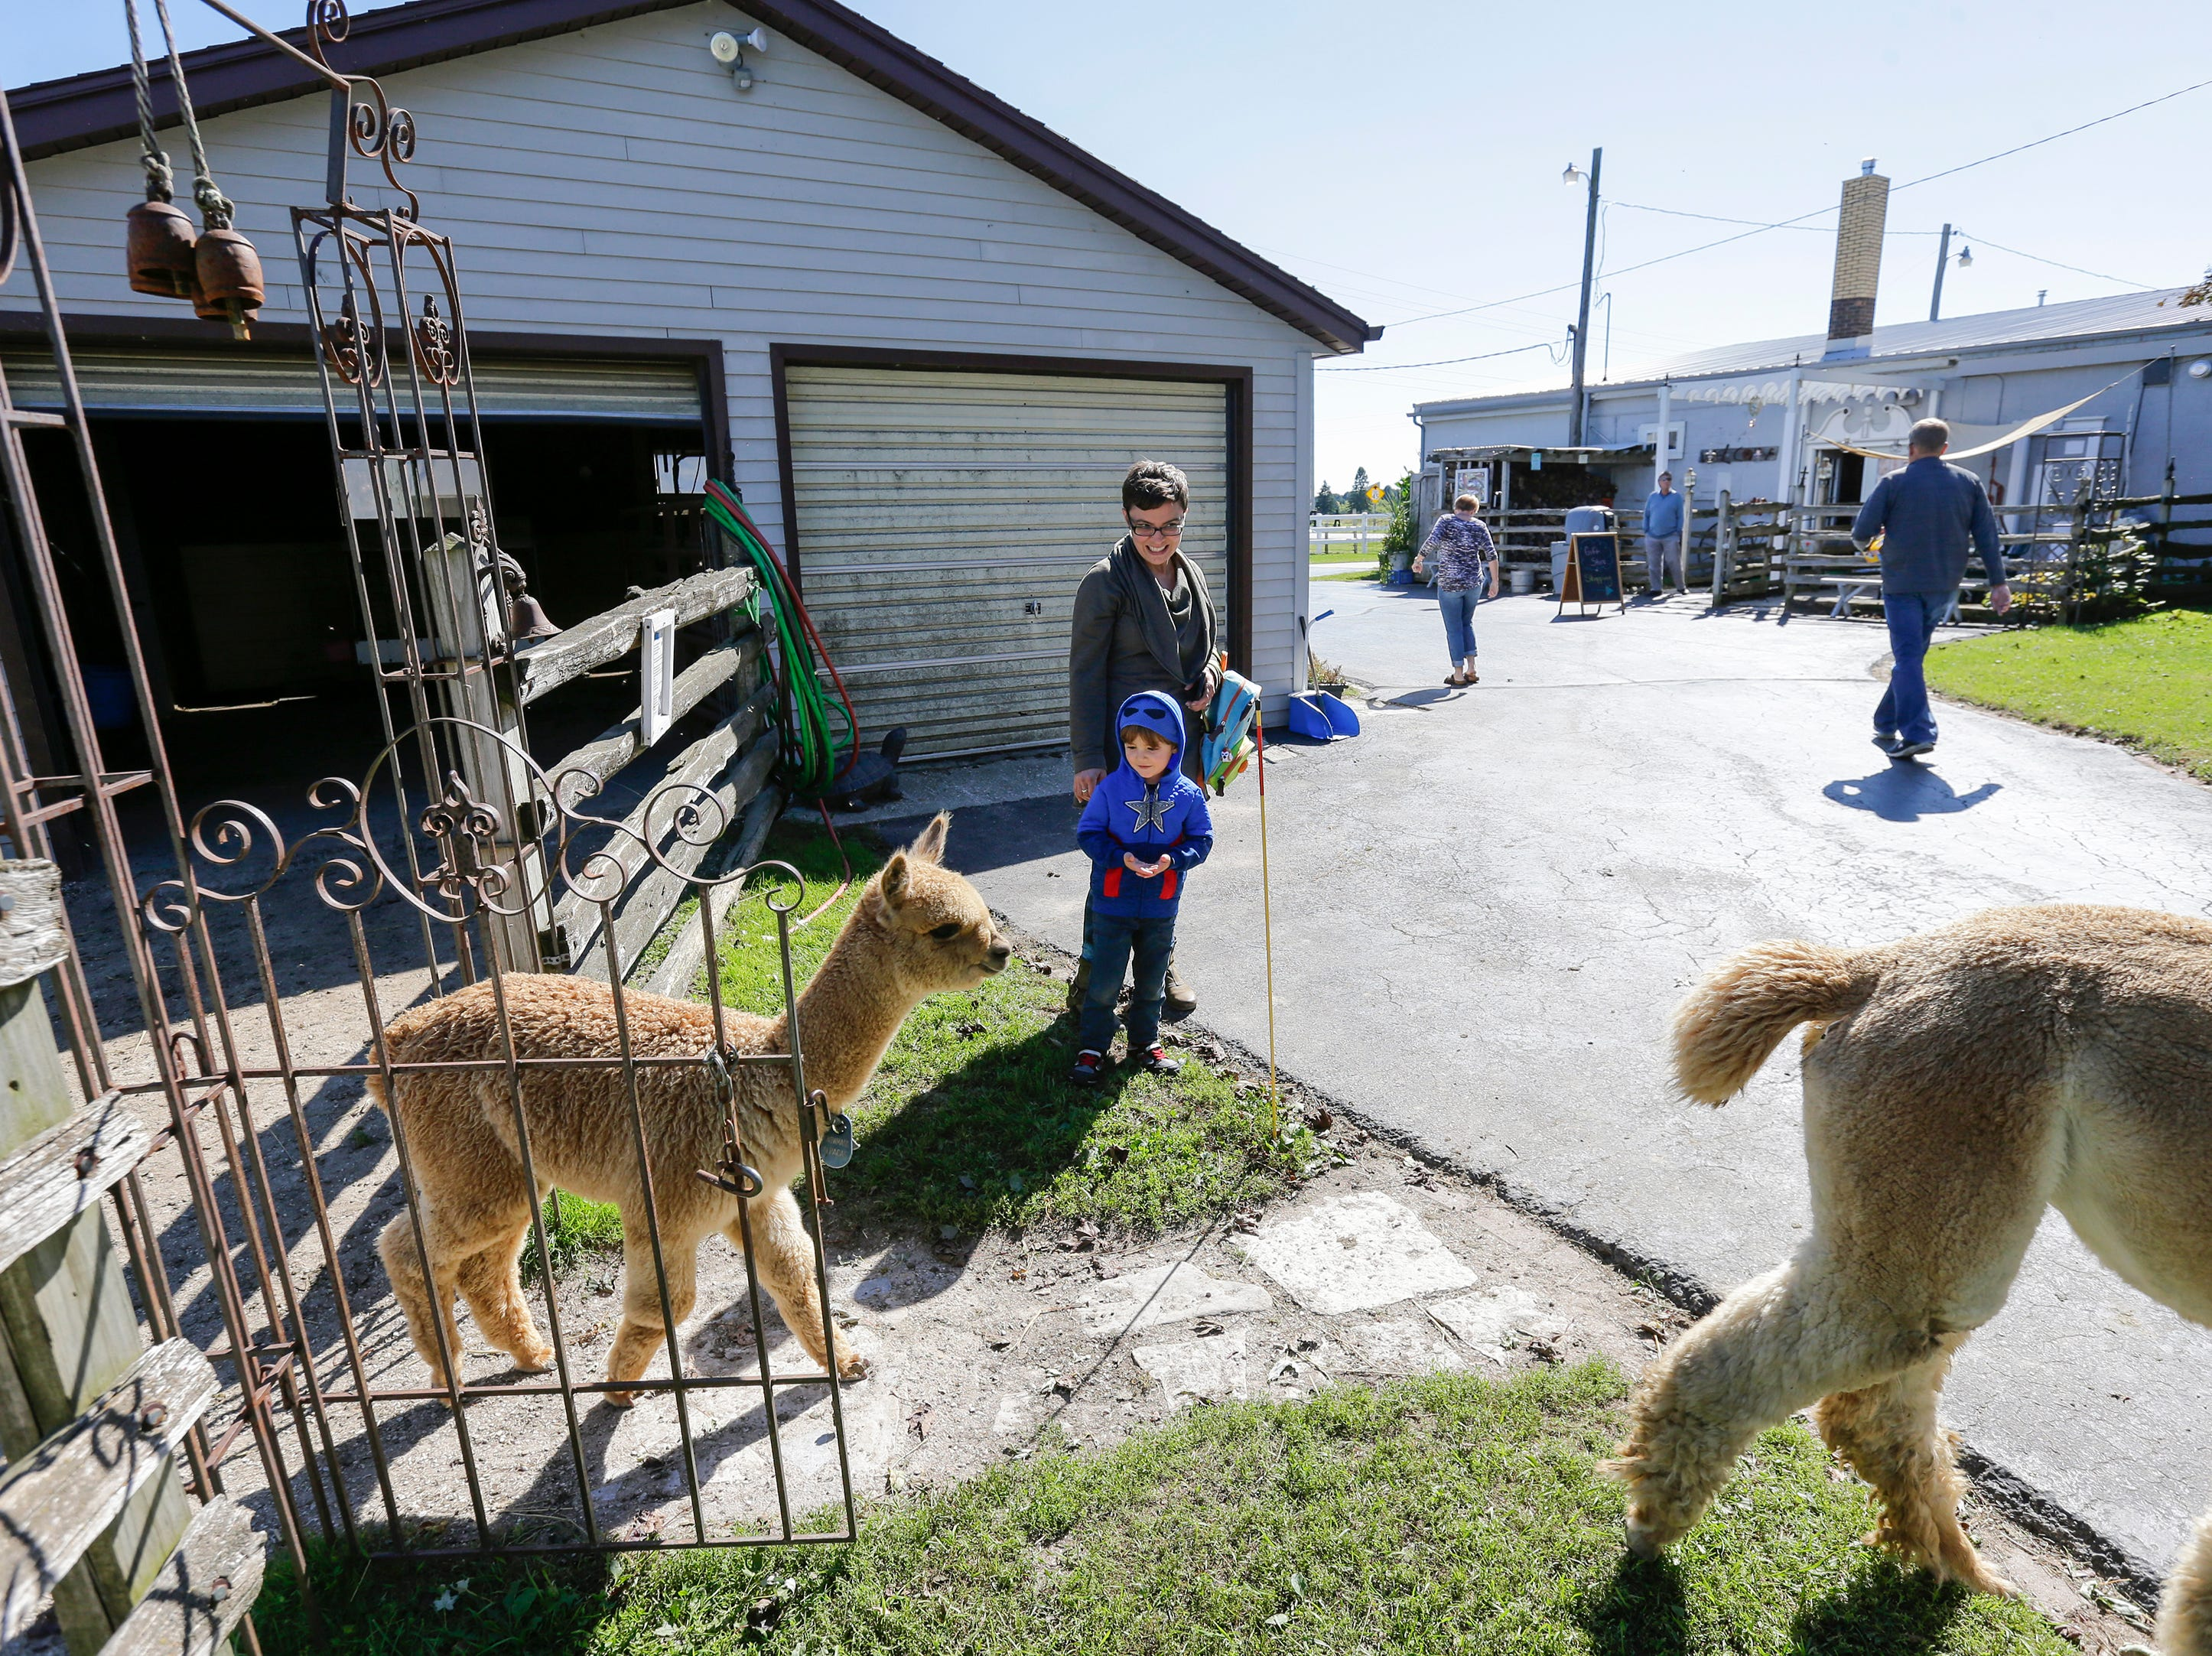 Everett, 3, and his mom Erica Haven, of Port Washington, watch alpacas roam LondonDairy Alpaca Ranch during National Alpaca Days Saturday, September 22, 2018, in Two Rivers, Wis. Josh Clark/USA TODAY NETWORK-Wisconsin